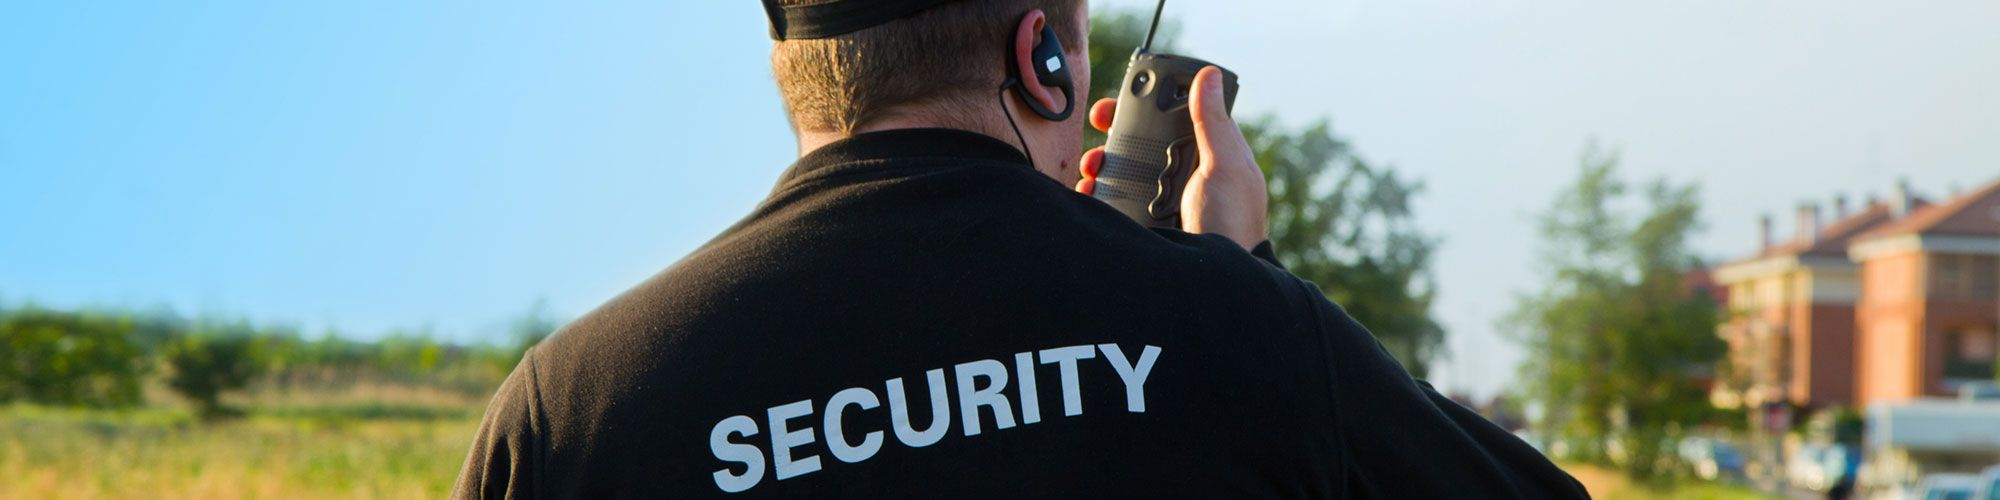 With The Goal To Present With The Information Needed To Make Confident Well Informed Decisions Exe Security Training Security Officer Training Event Security